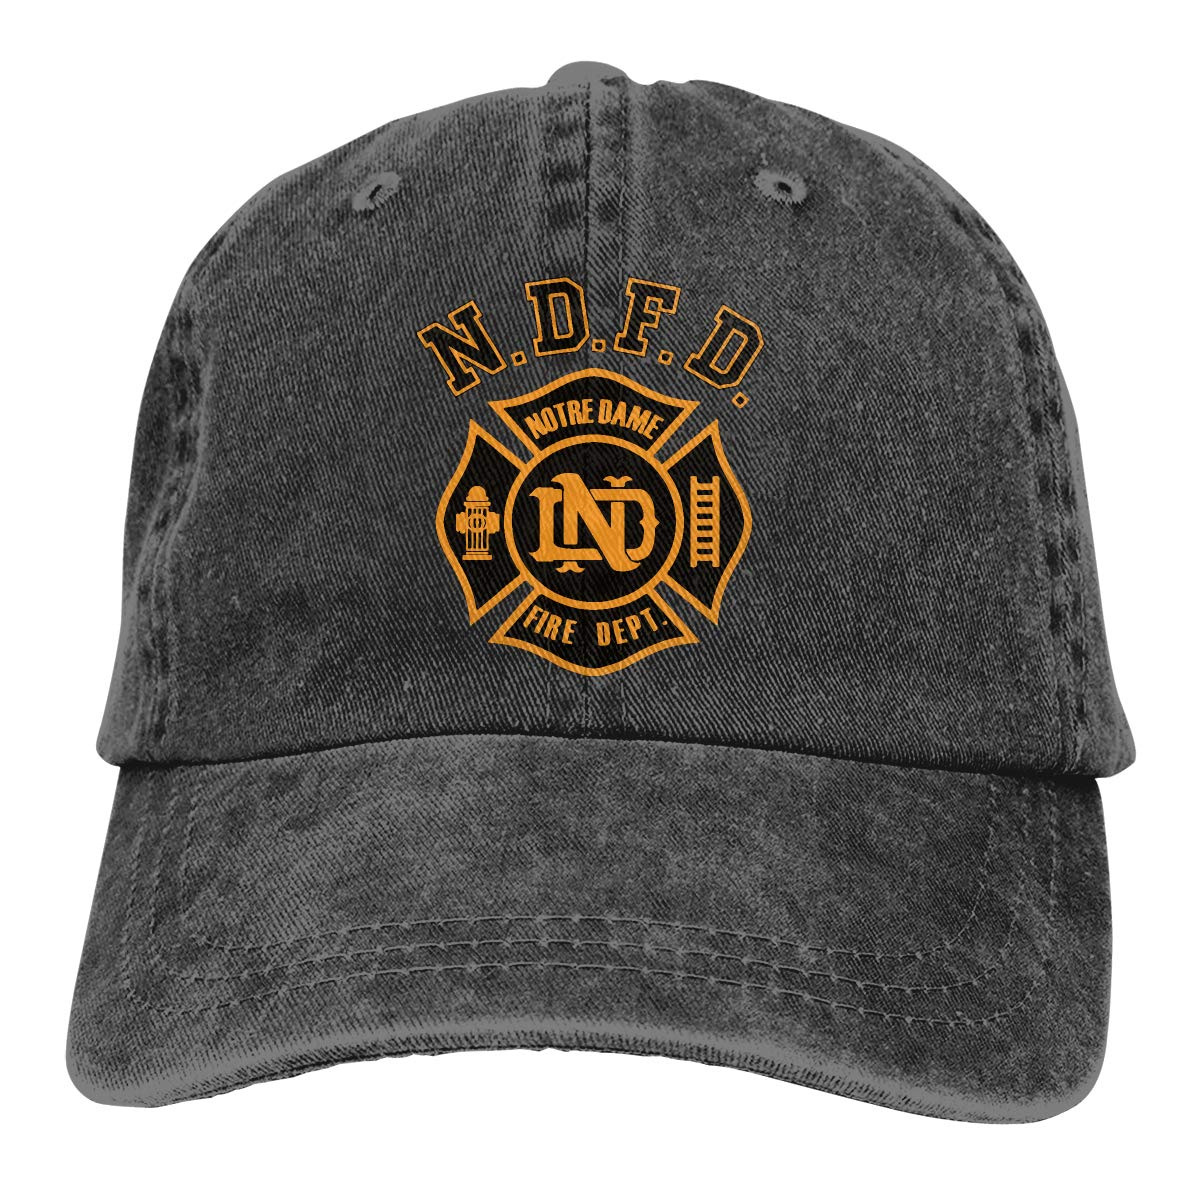 PMGM-C Notre Dame Fire Department Adult Personalize Cowboy Outdoor Sports Hat Adjustable Baseball Cap